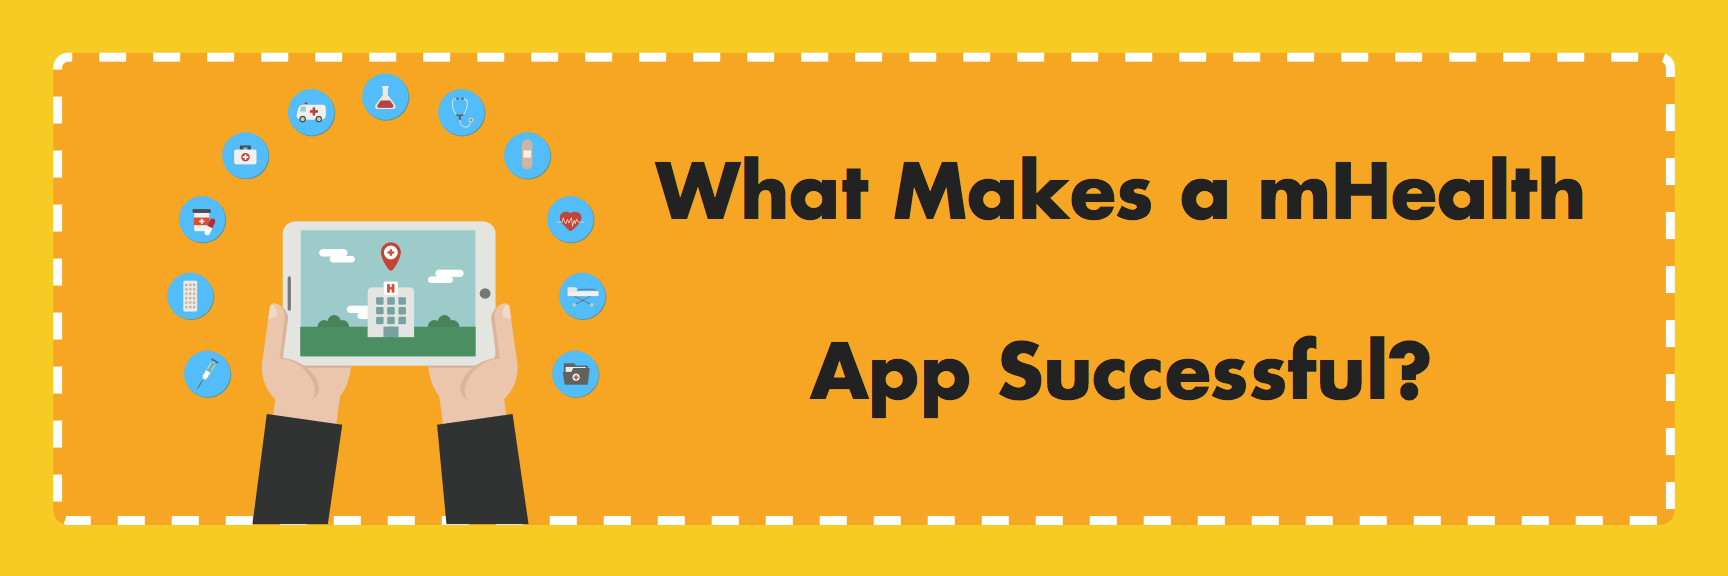 mHealth apps sucessful